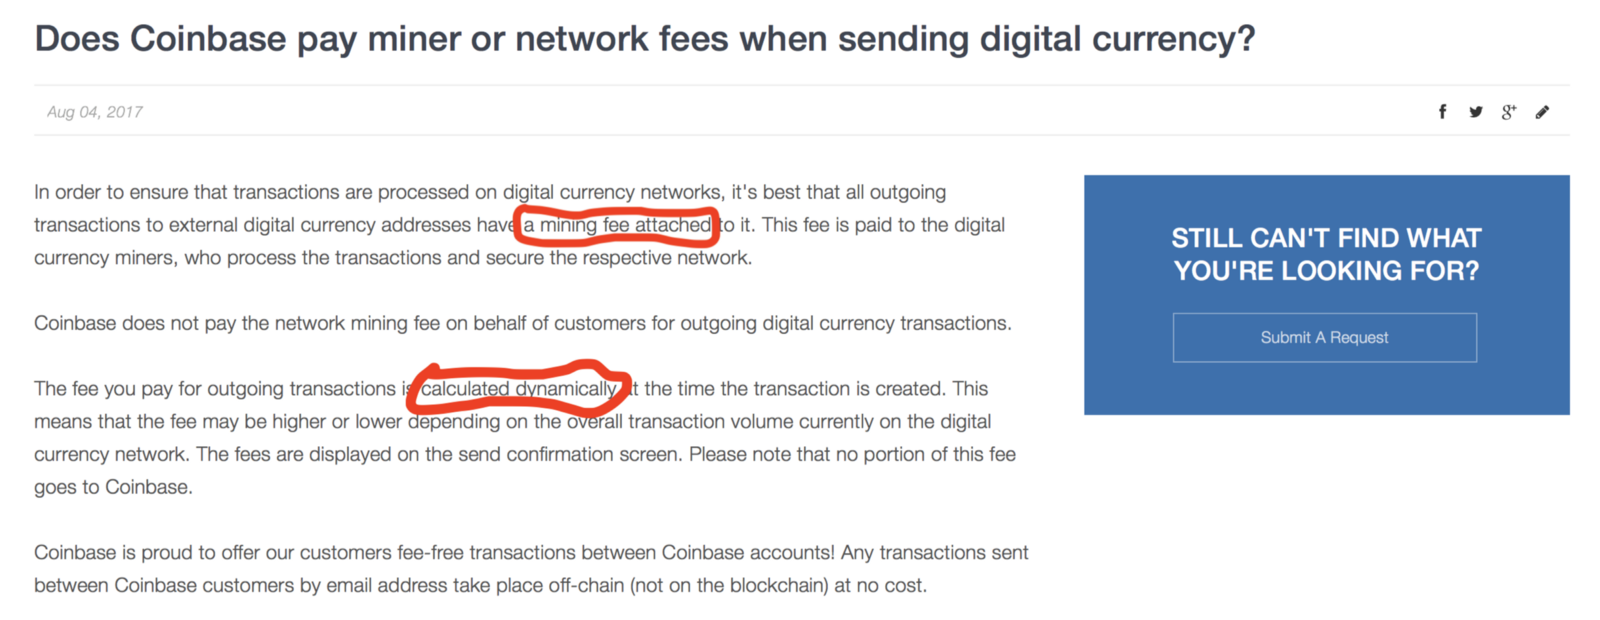 Coinbase How To Submit Selfie How To Valuate Bitcoin